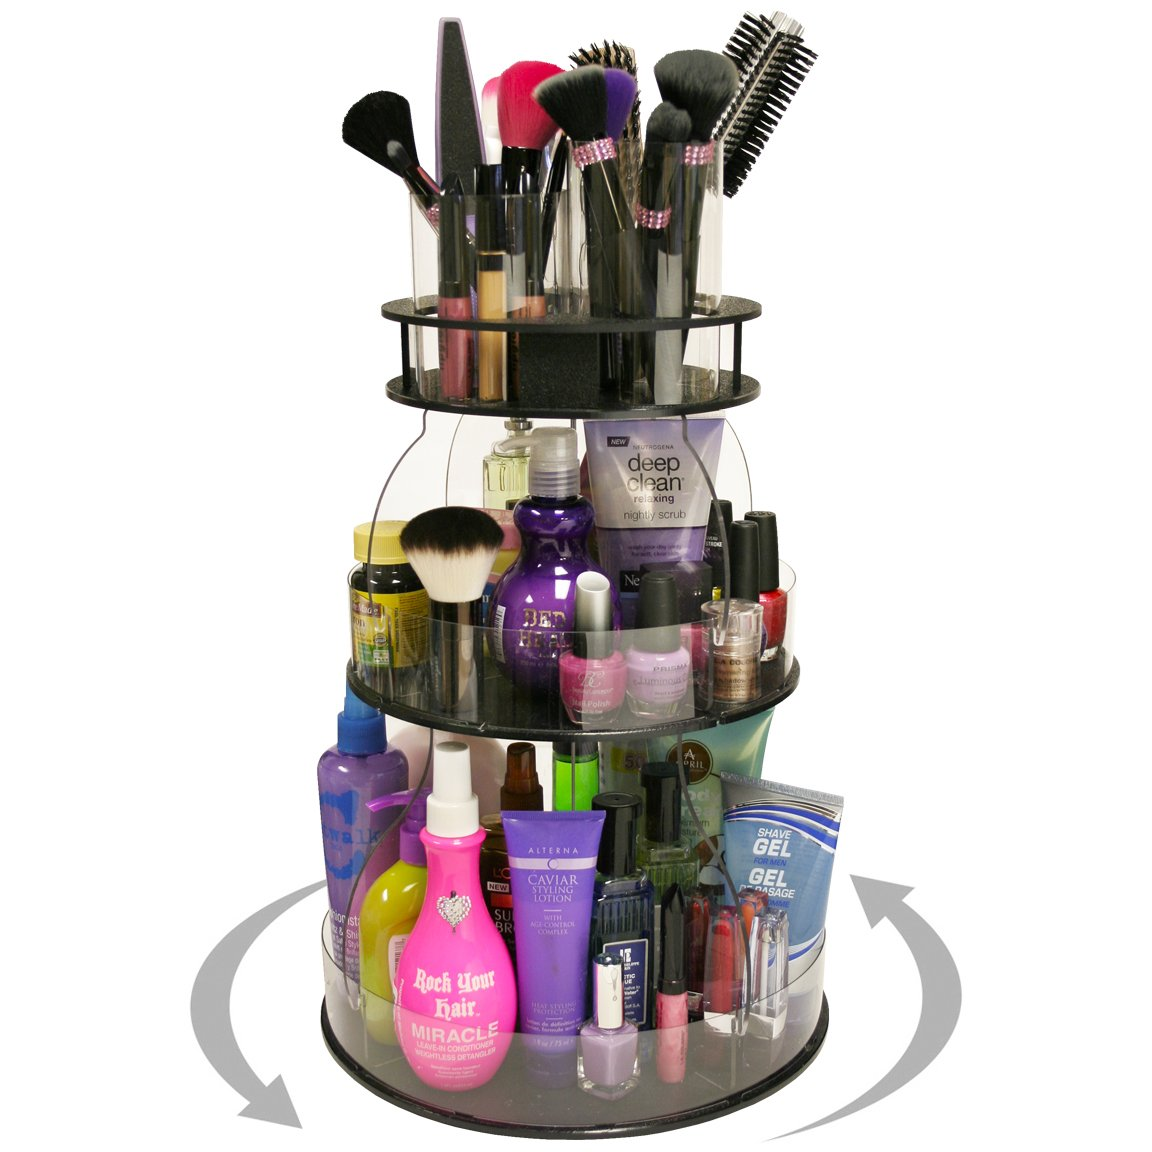 New...Makeup & Cosmetic Organizer with 4 Tube Holders for Brushes Etc.That Spins for Easy Access to all your Beauty Essentials, NO More Clutter! Give Yourself a Neat, Clean Countertop in Only 12'' of Space. ...Proudly Made in the USA! by PPM.